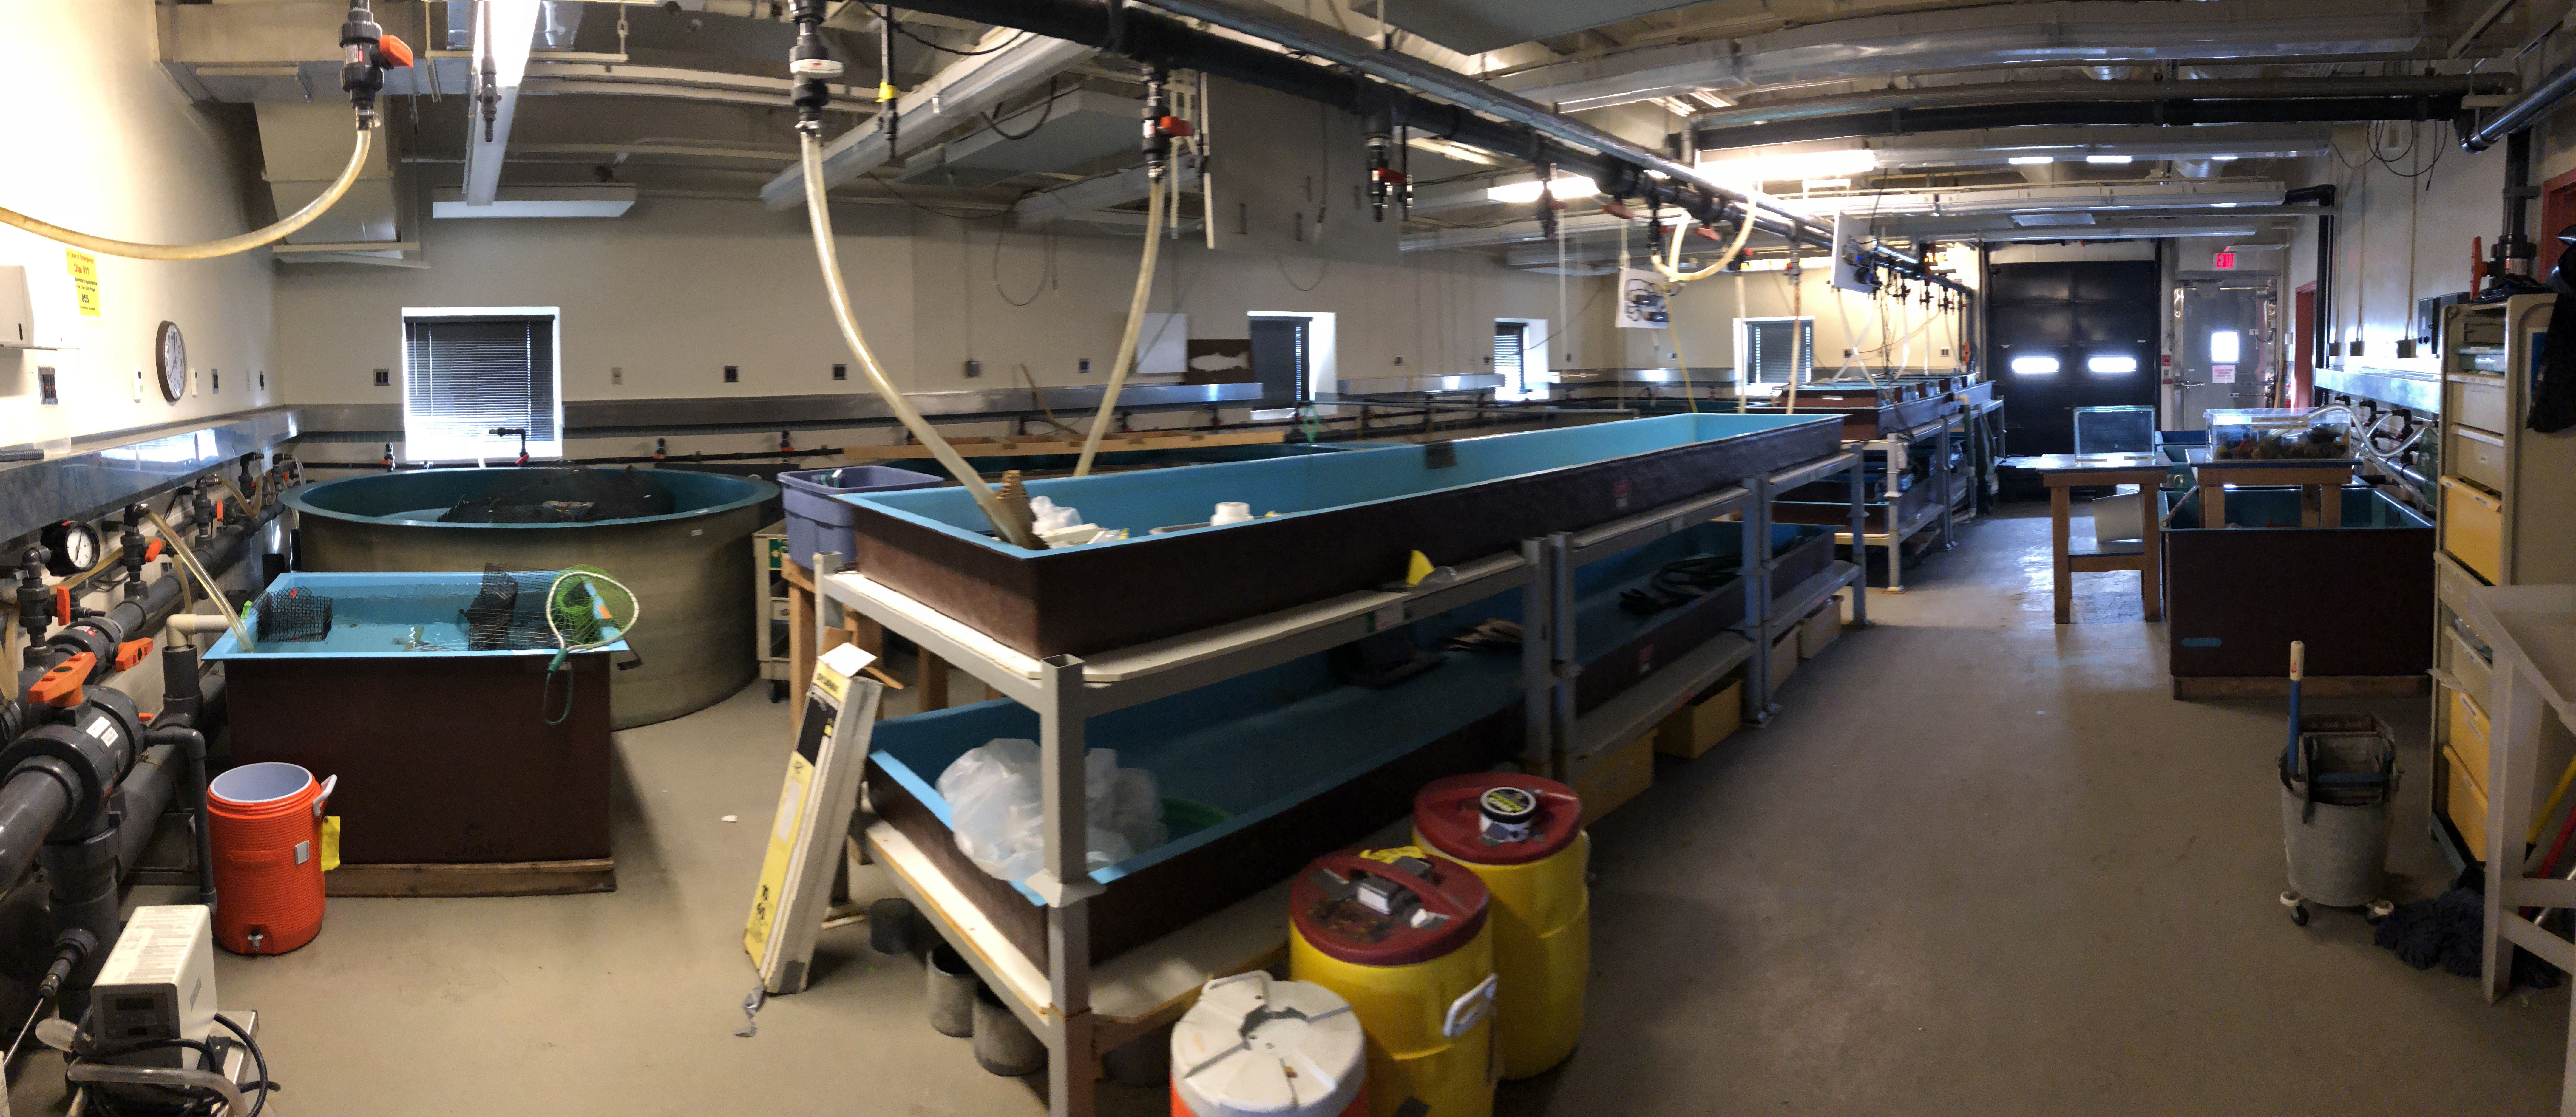 Marine Science Lab